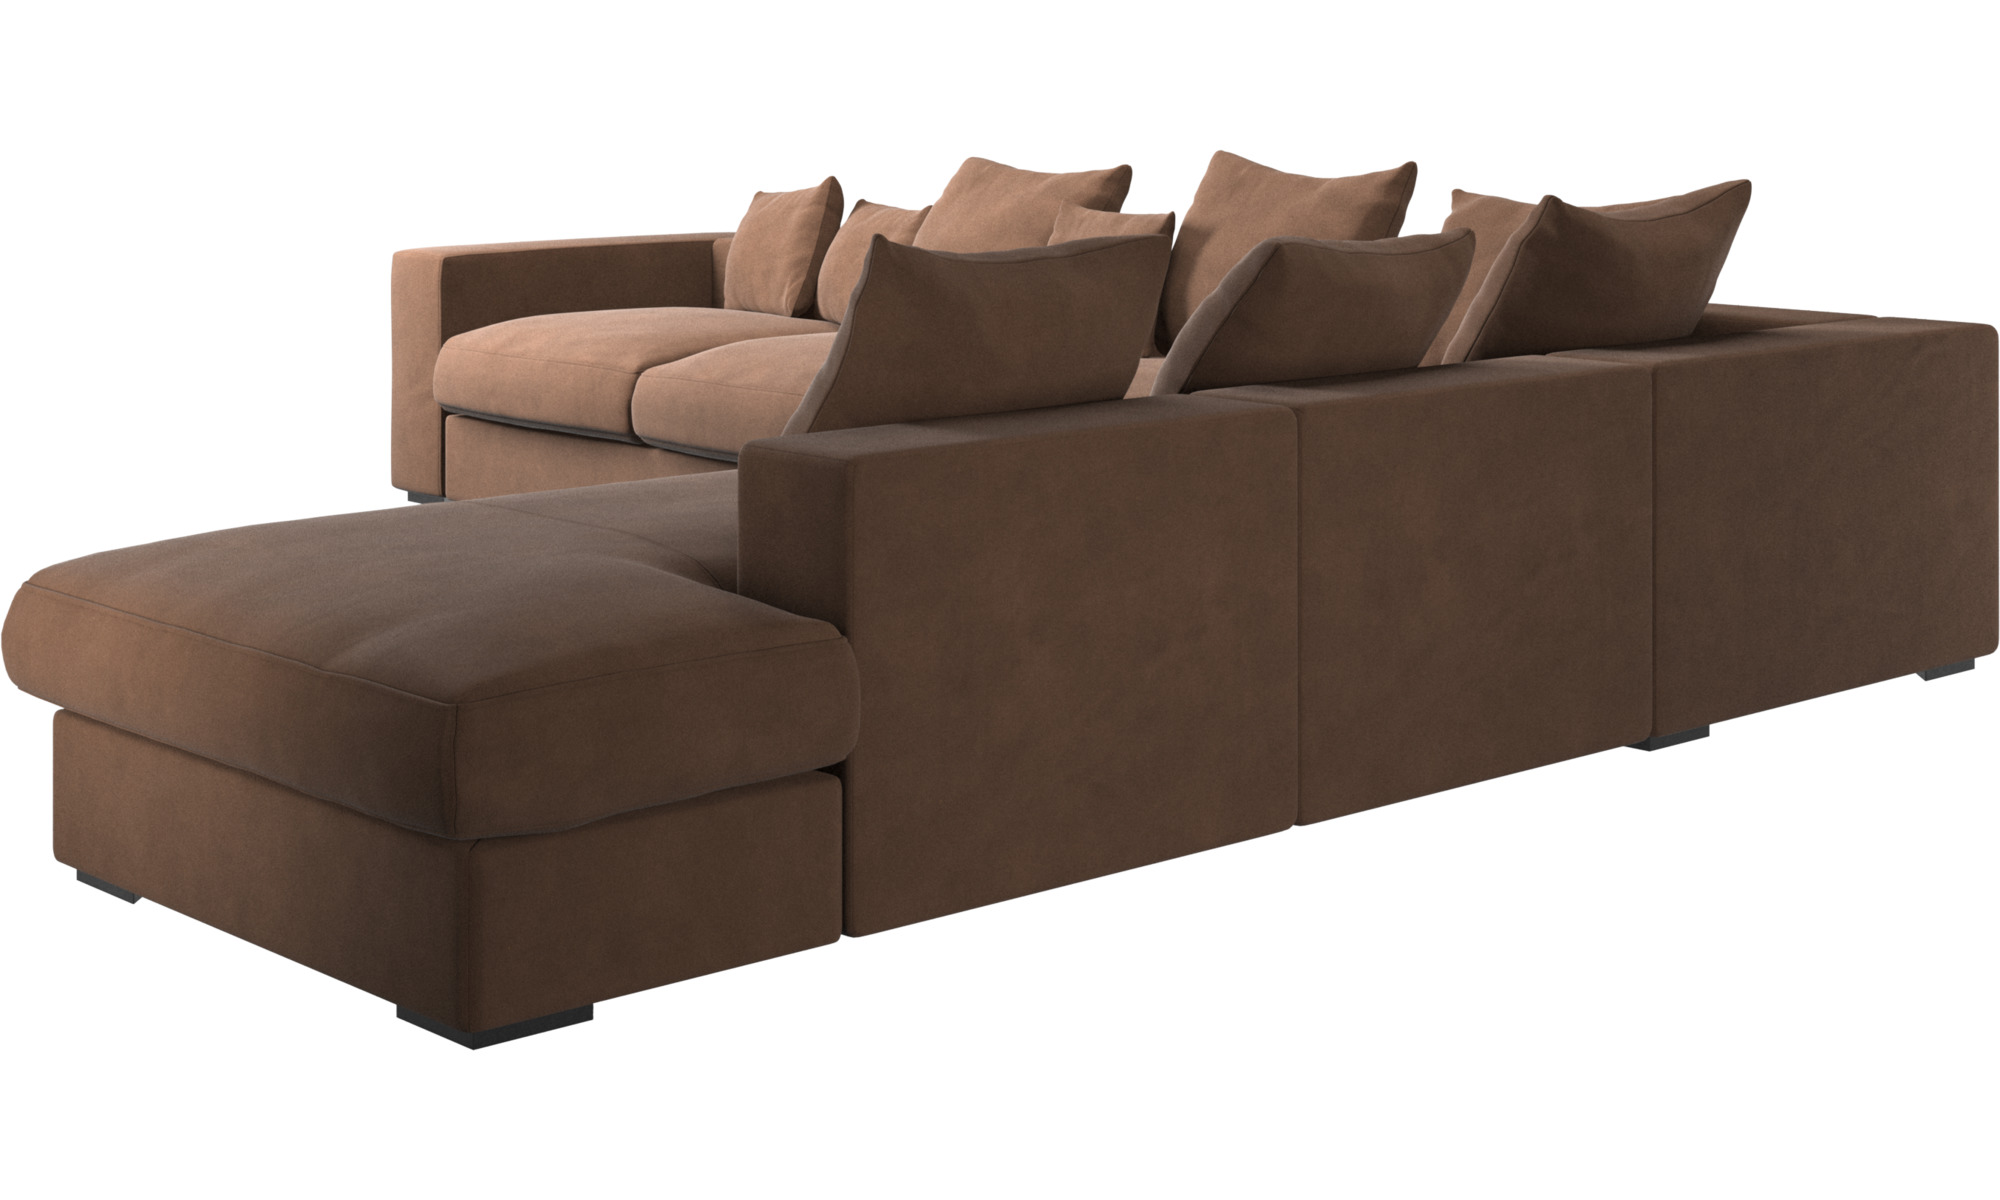 Sofas rinconeras modernos affordable category sofs with - Sofa rinconera moderno ...